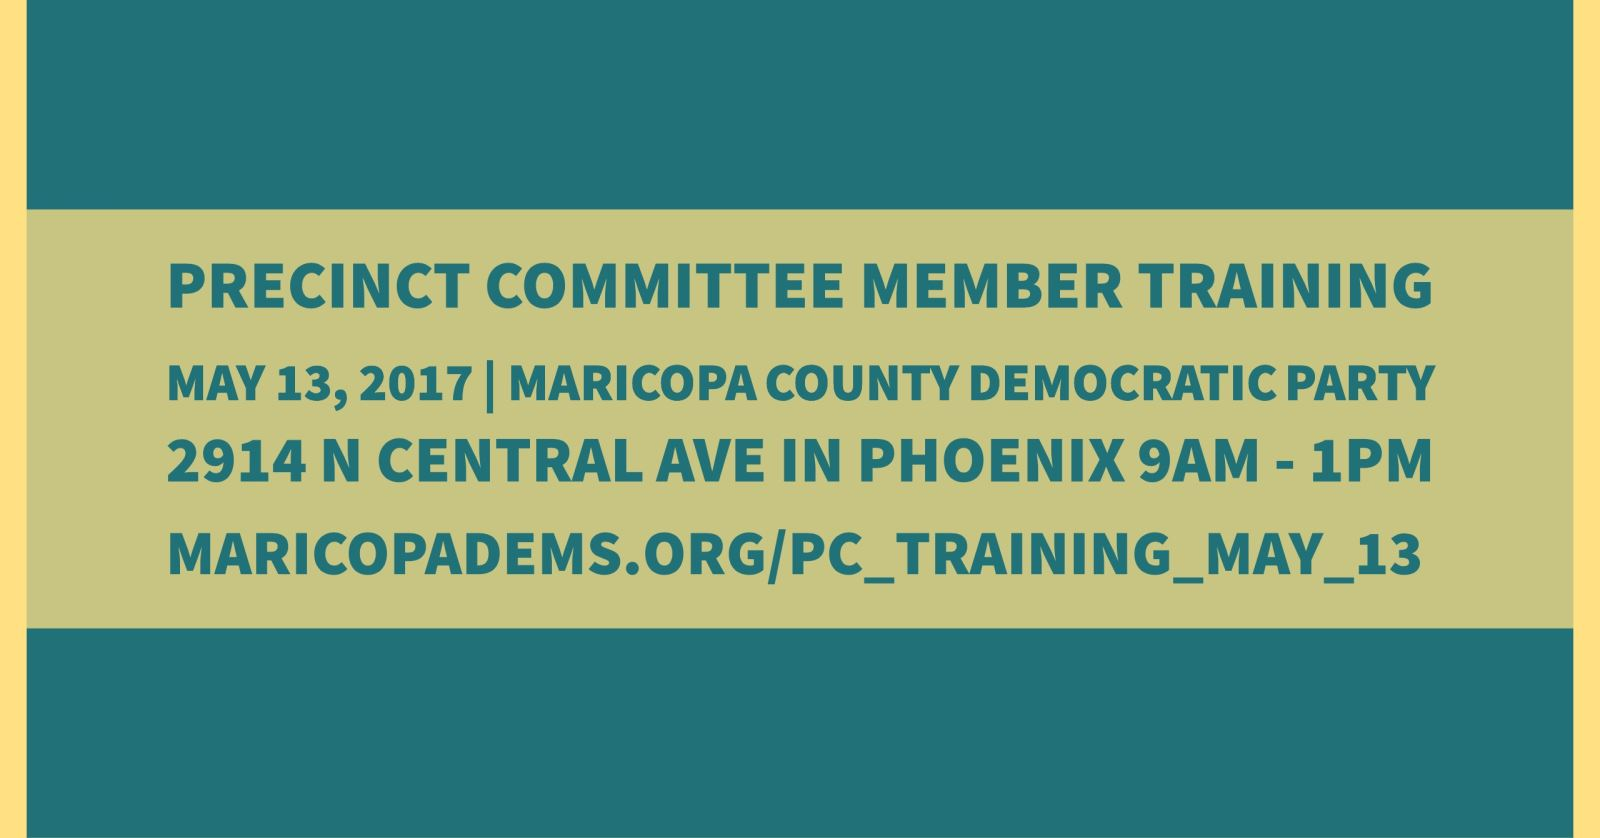 Donate to the Maricopa County Democratic Party